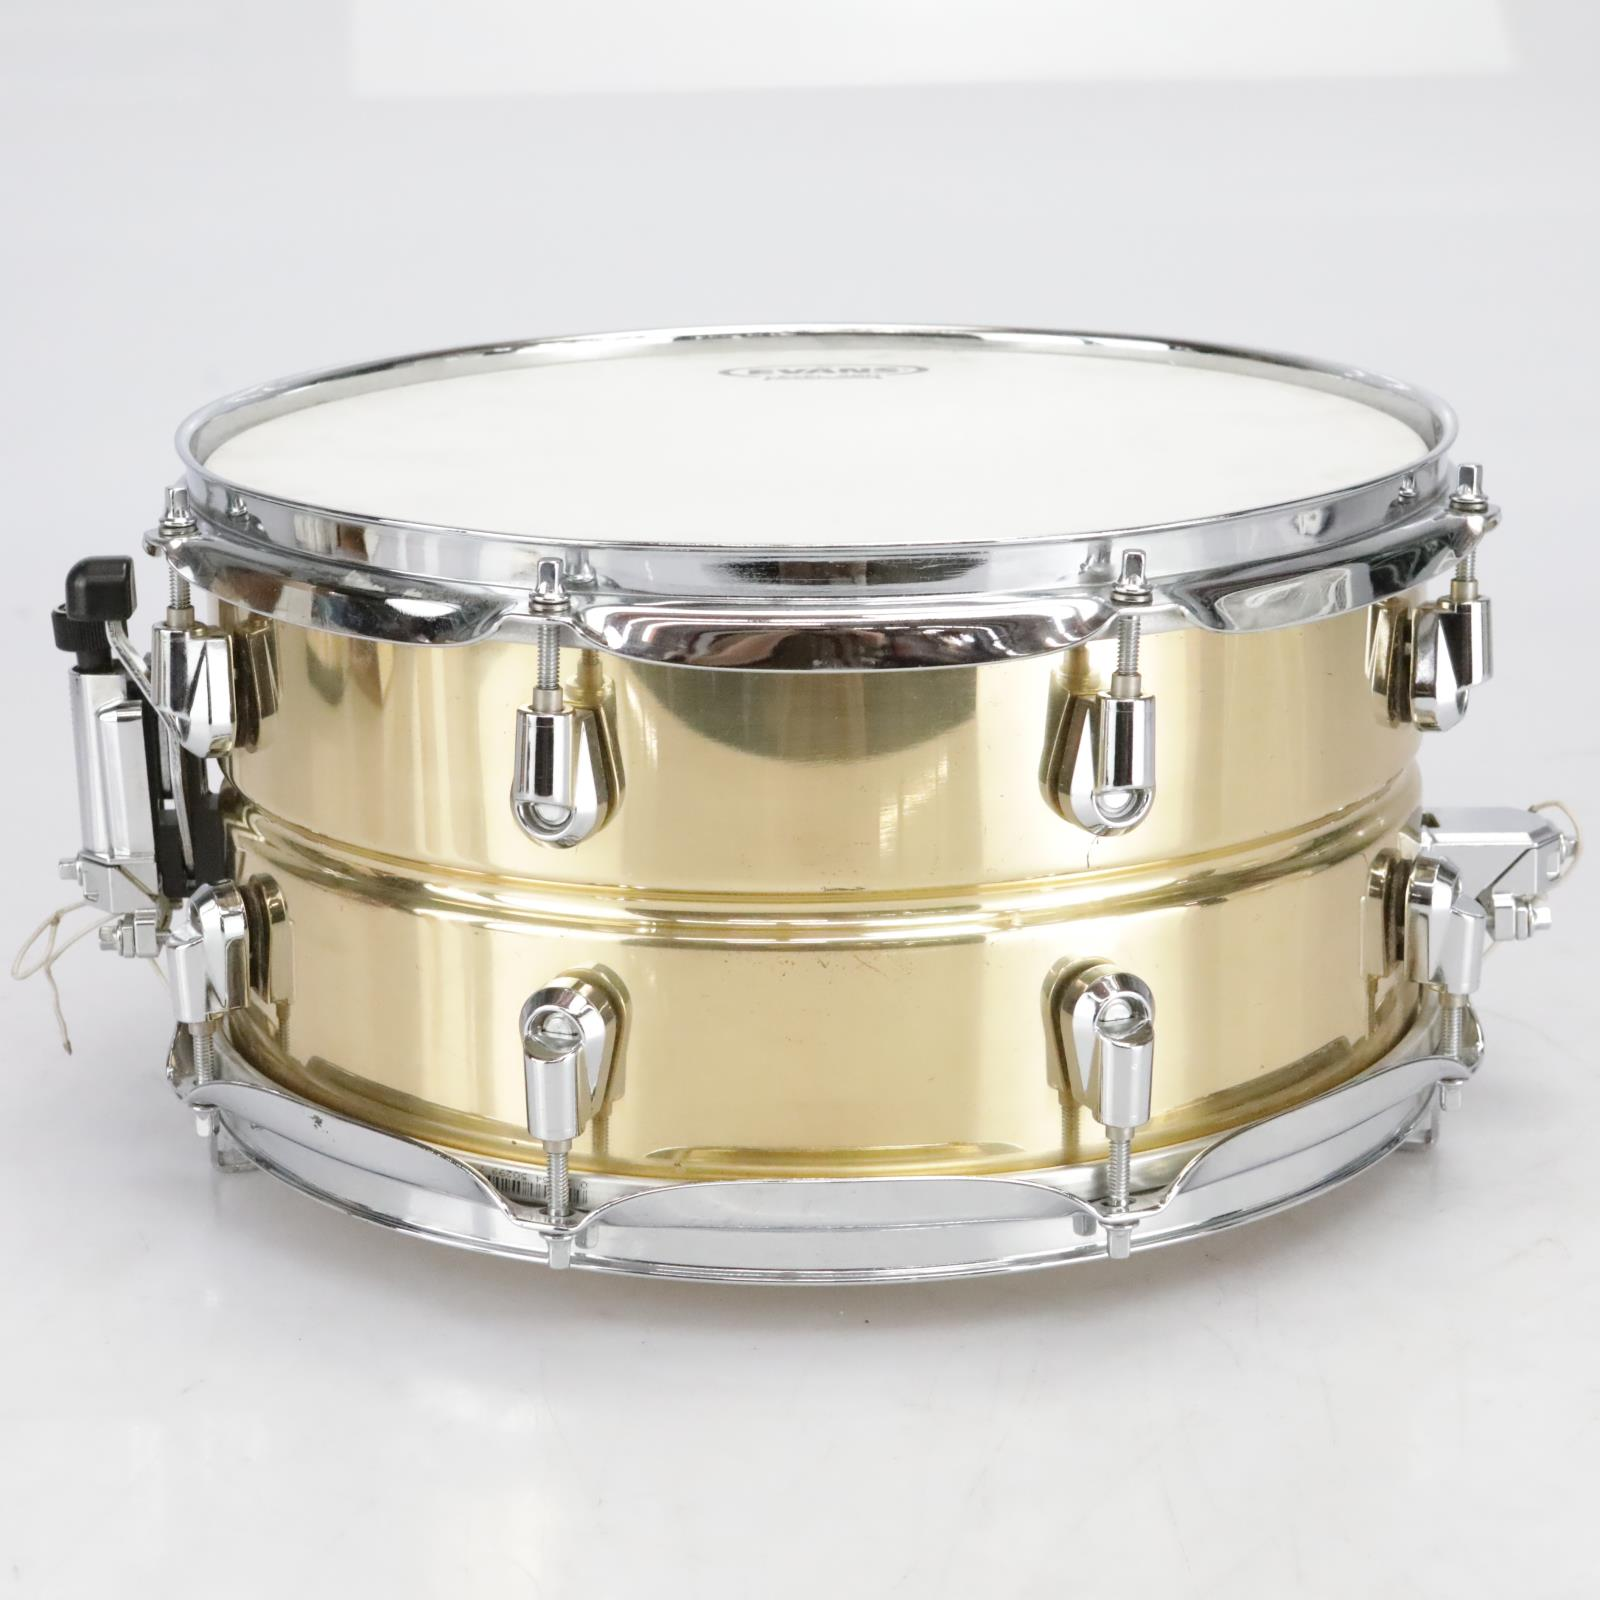 """Yamaha SD-4365 Brass Snare Drum 13"""" X 6.5"""" Made in Japan #41043"""